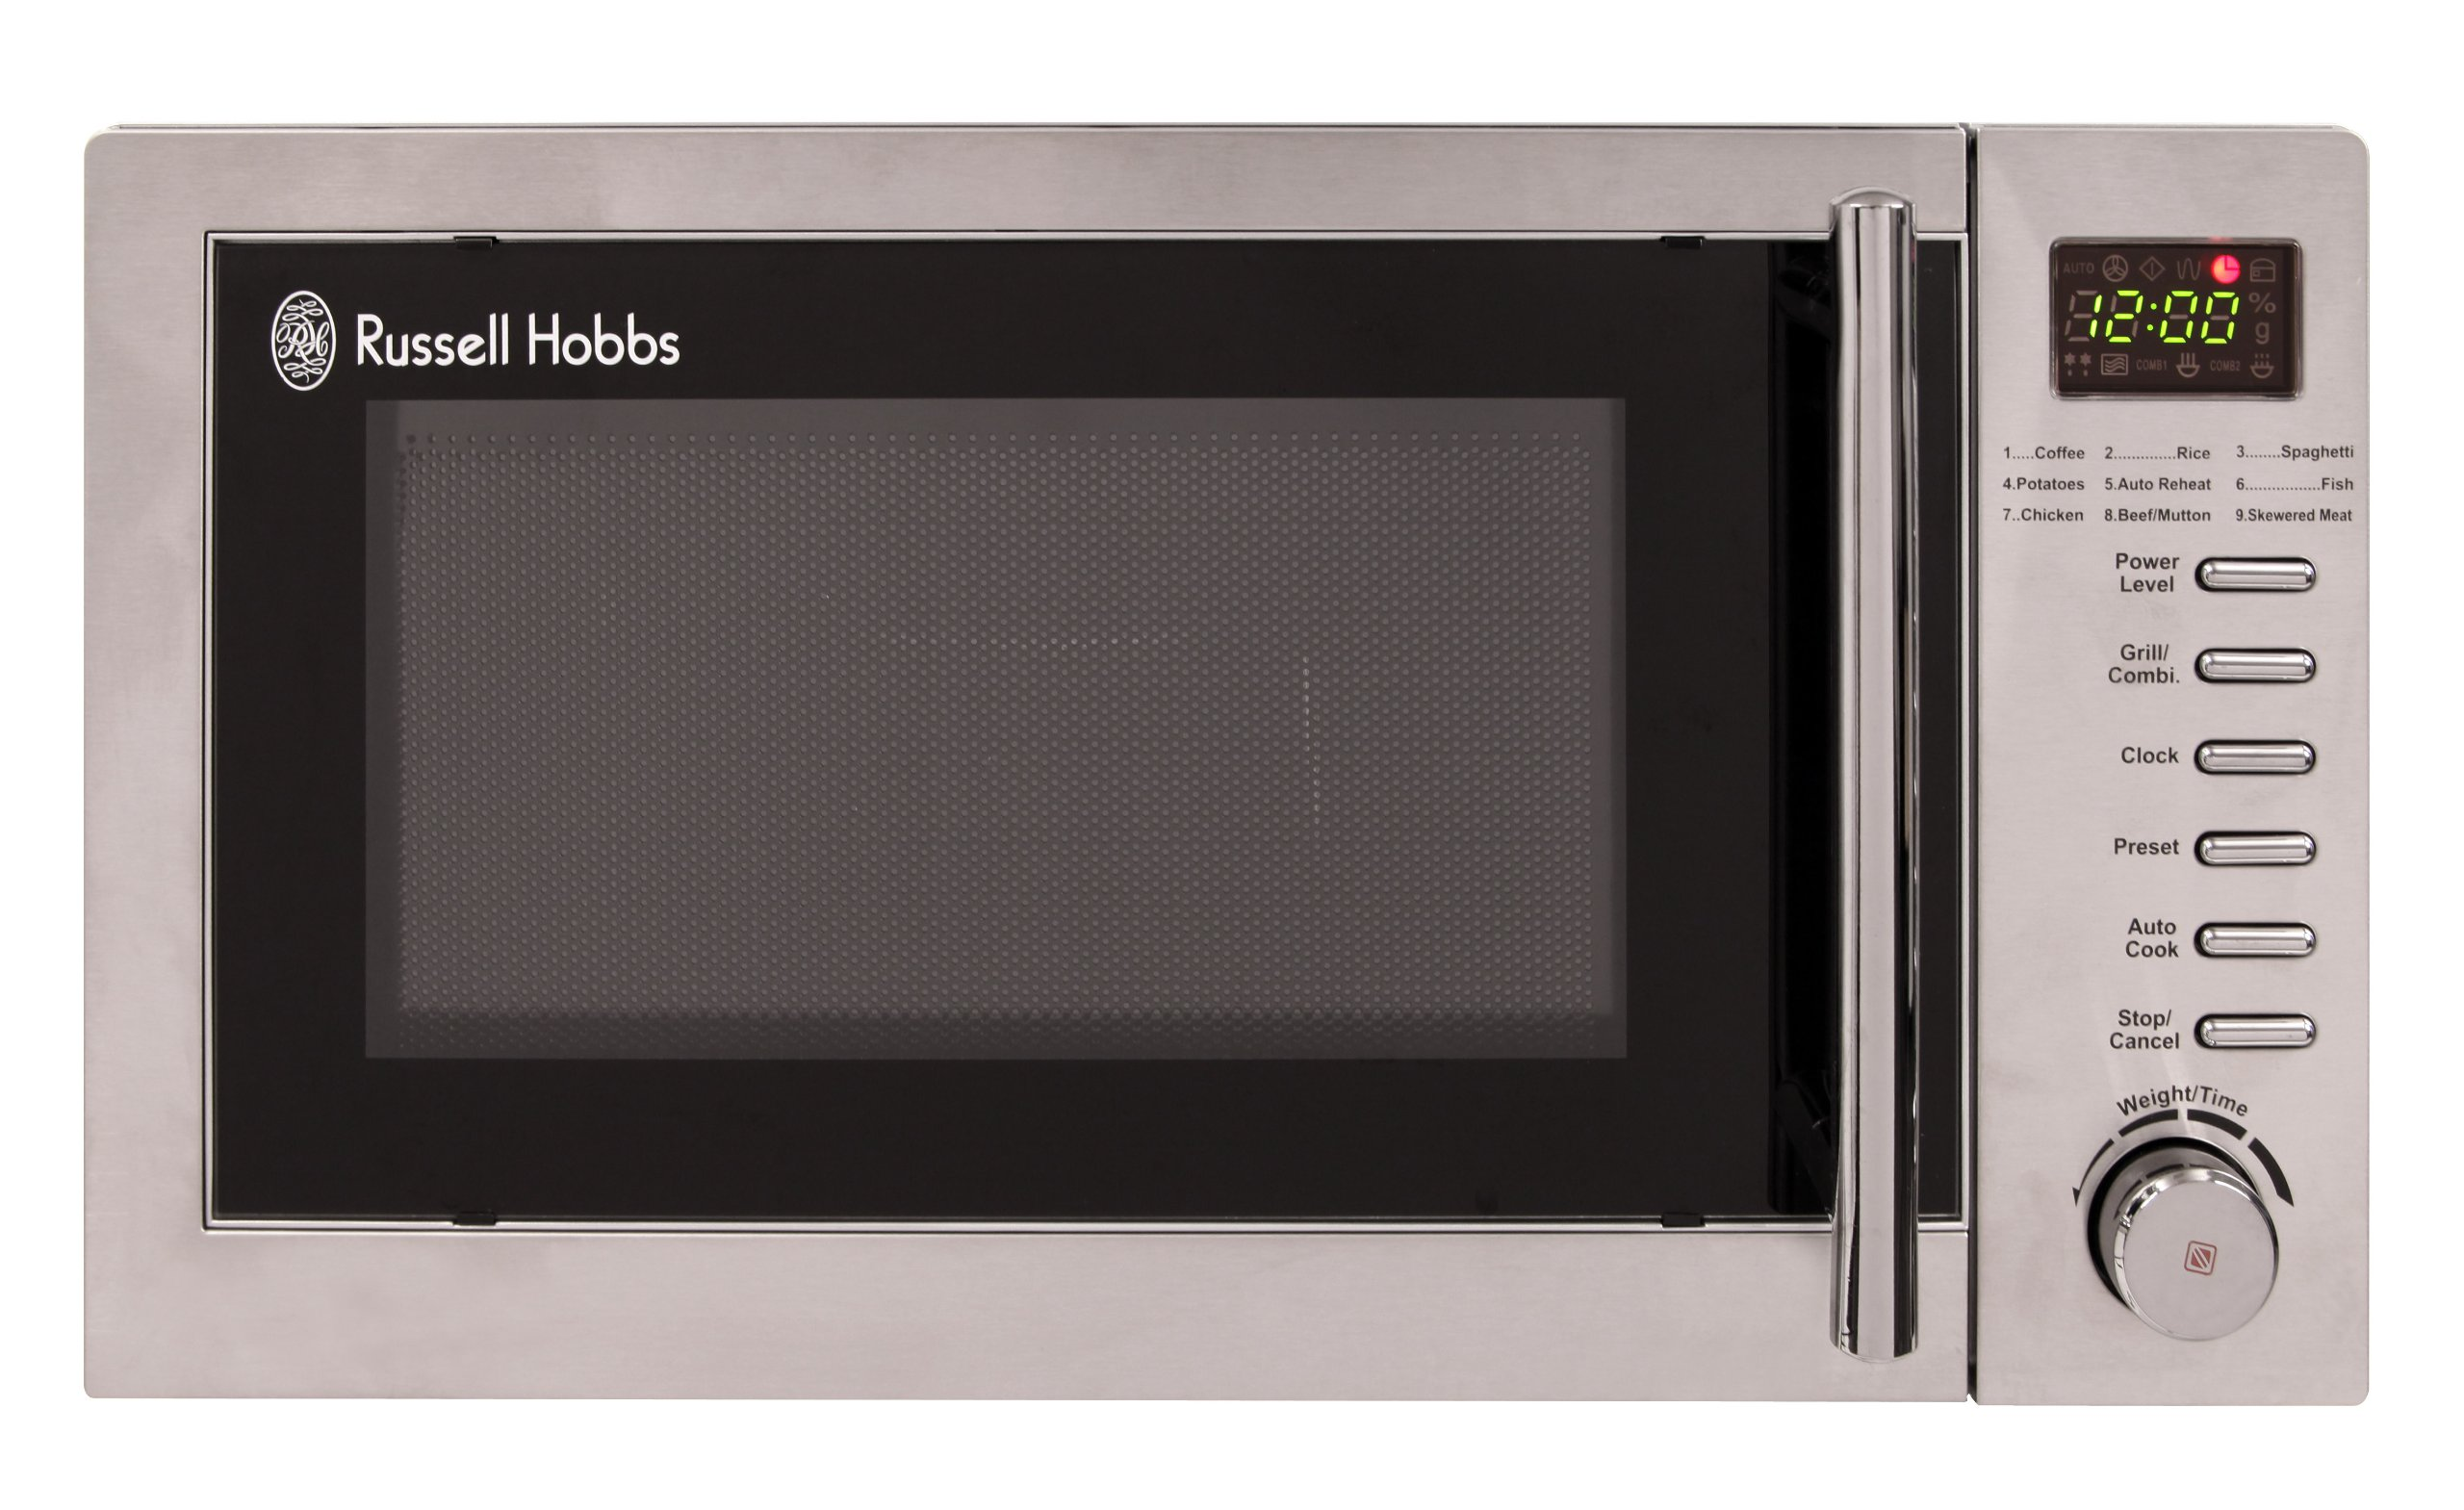 russell hobbs rhm2031 20 litre stainless steel digital microwave with grill new ebay. Black Bedroom Furniture Sets. Home Design Ideas